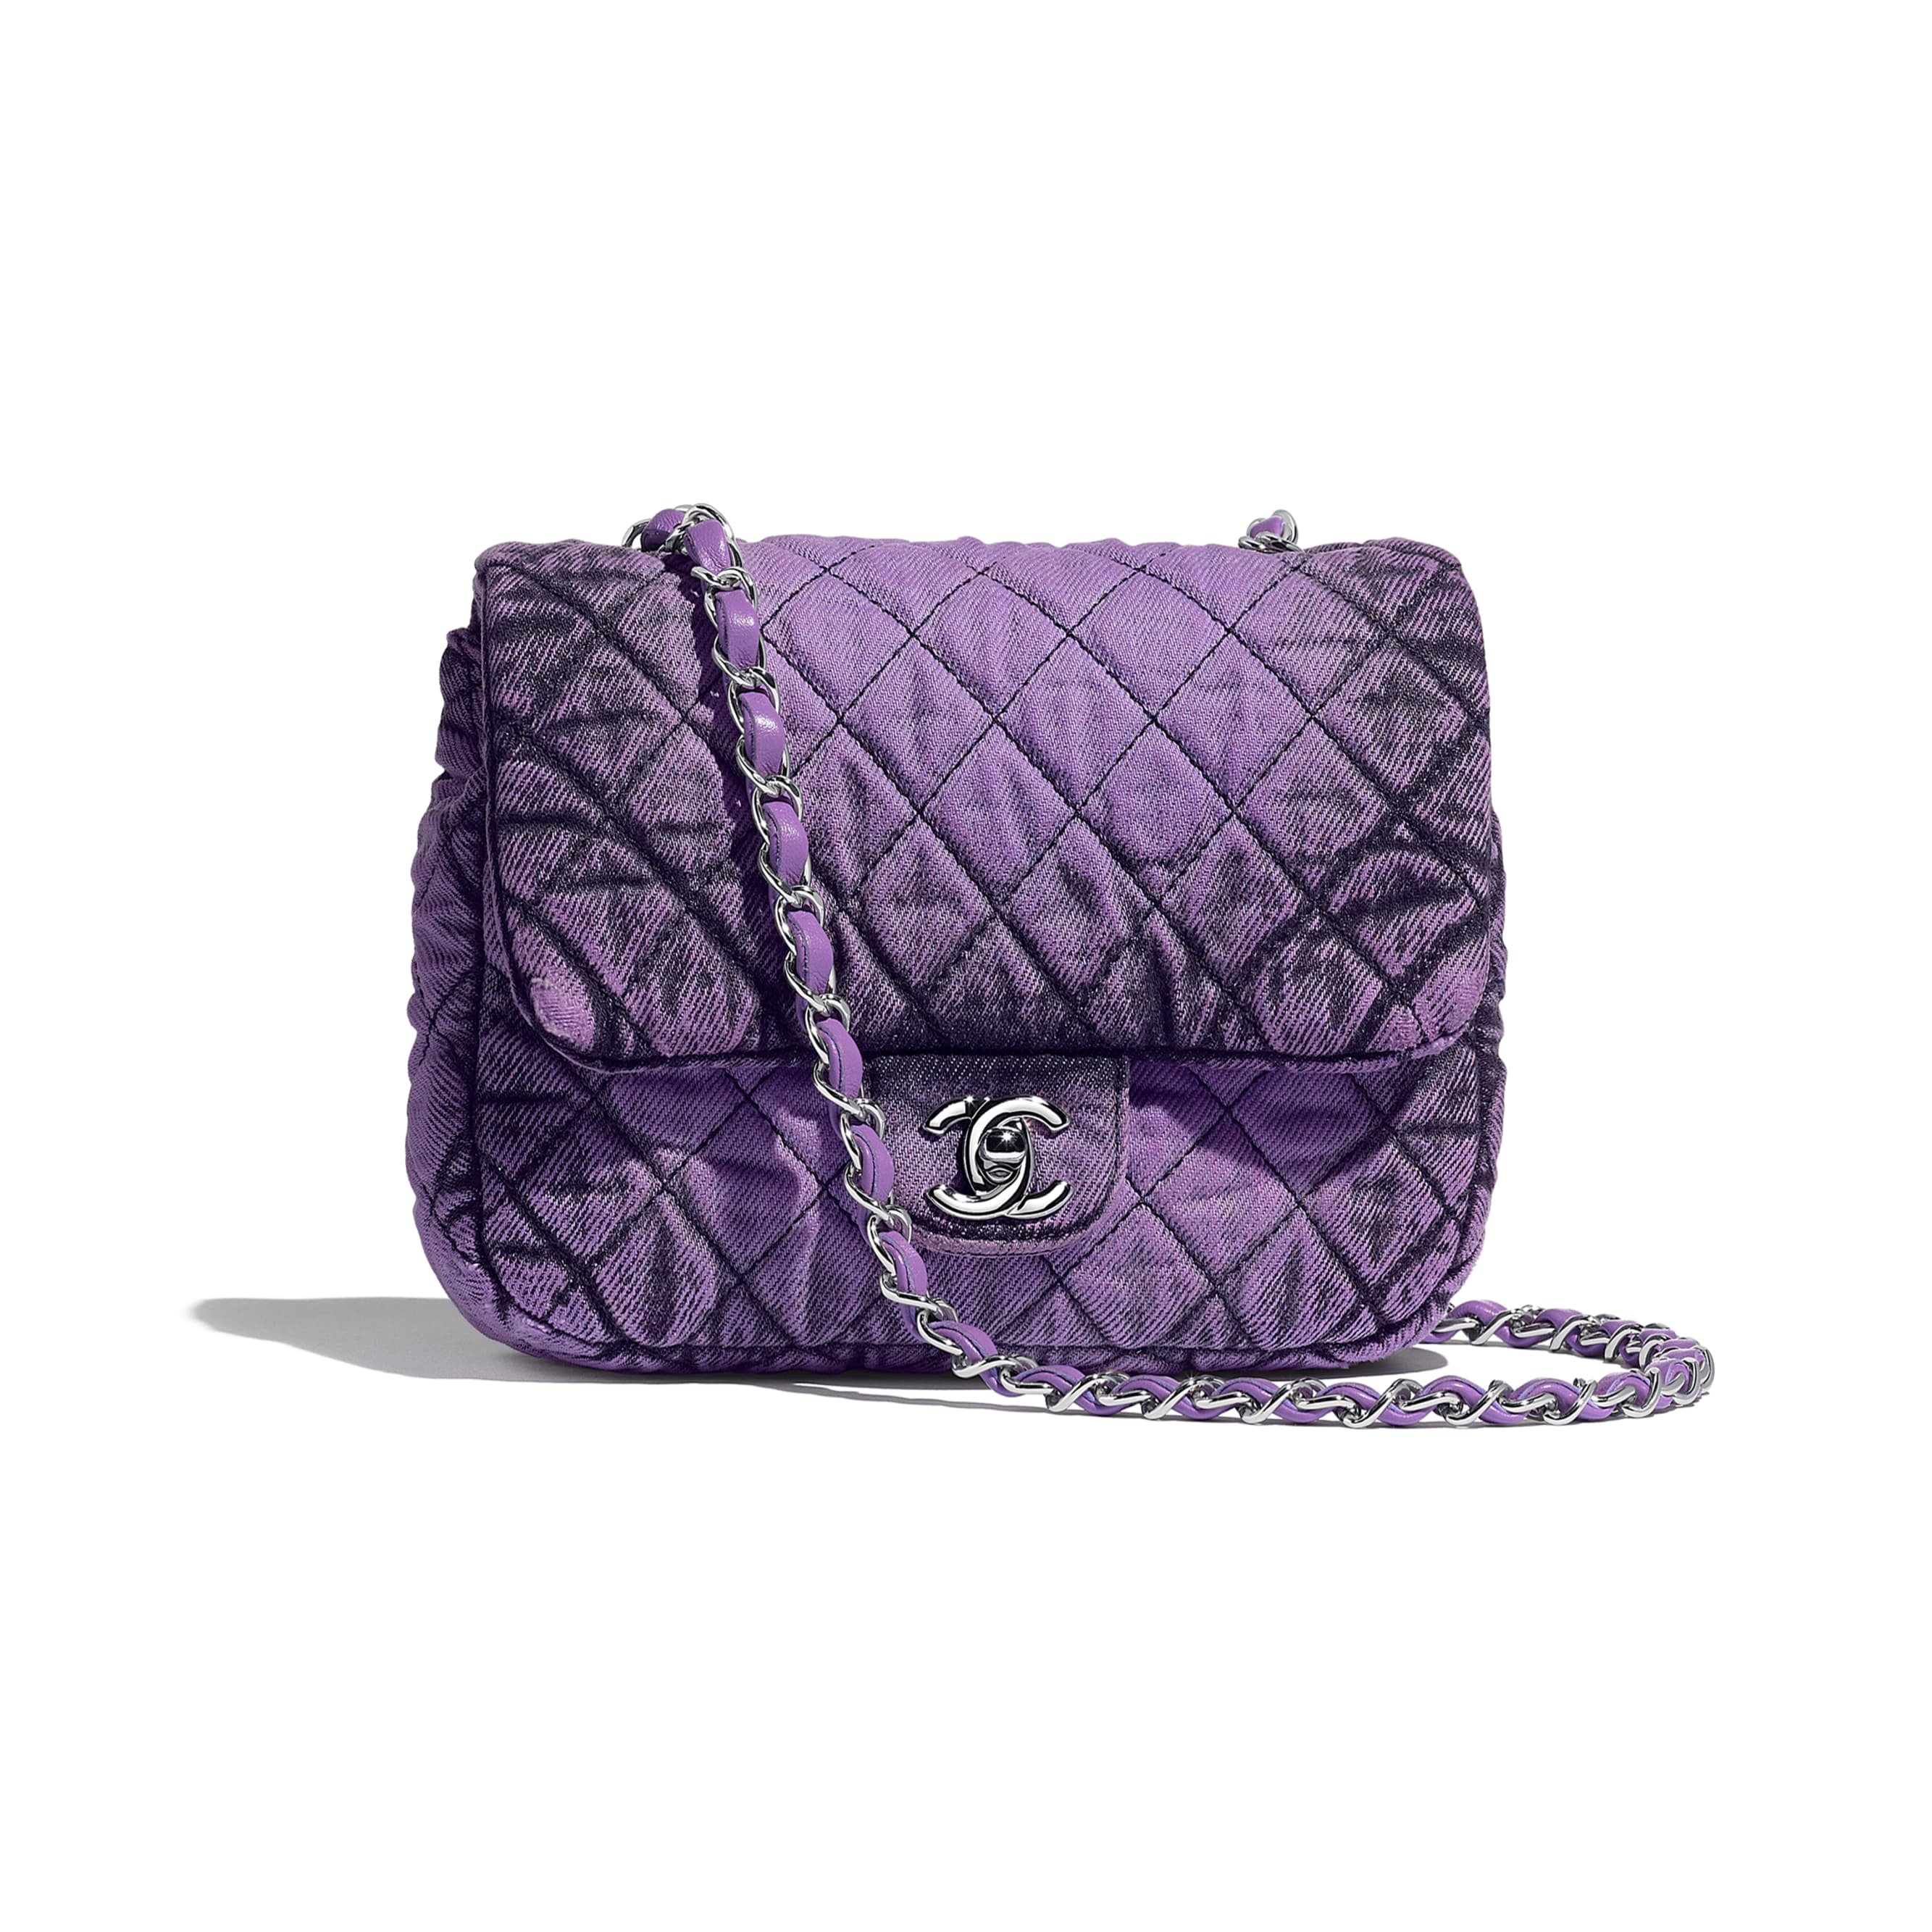 Small Flap Bag - Purple & Black - Denim & Silver-Tone Metal - CHANEL - Default view - see standard sized version